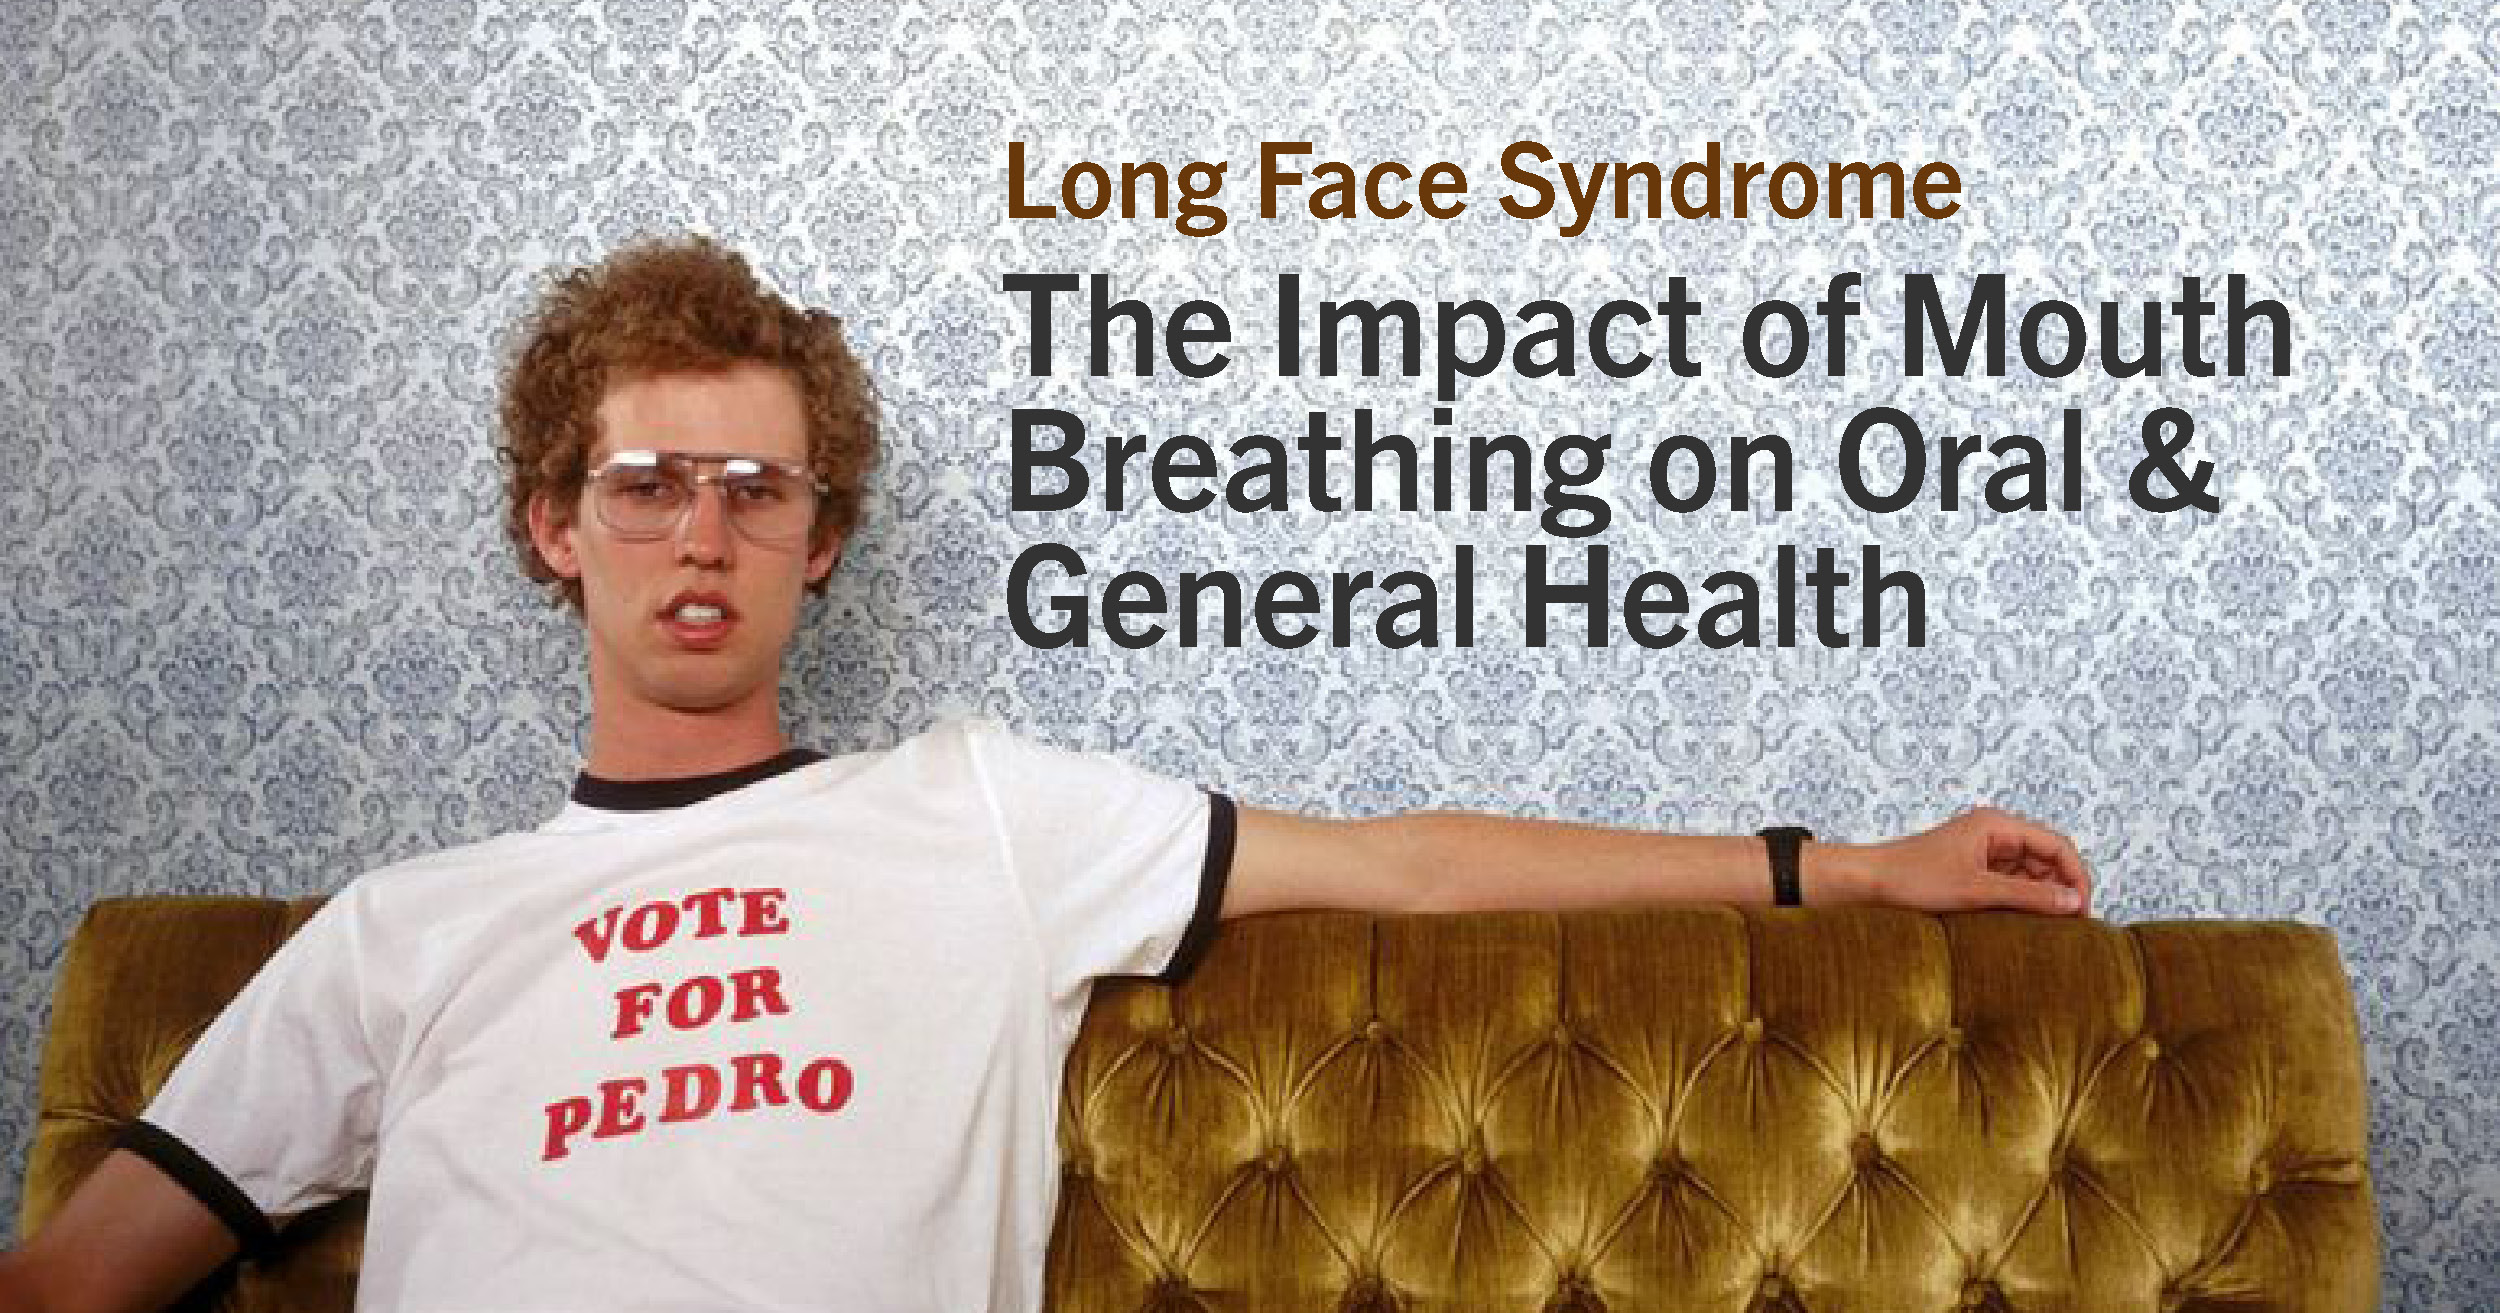 The Impact of Mouth Breathing on Oral & General Health